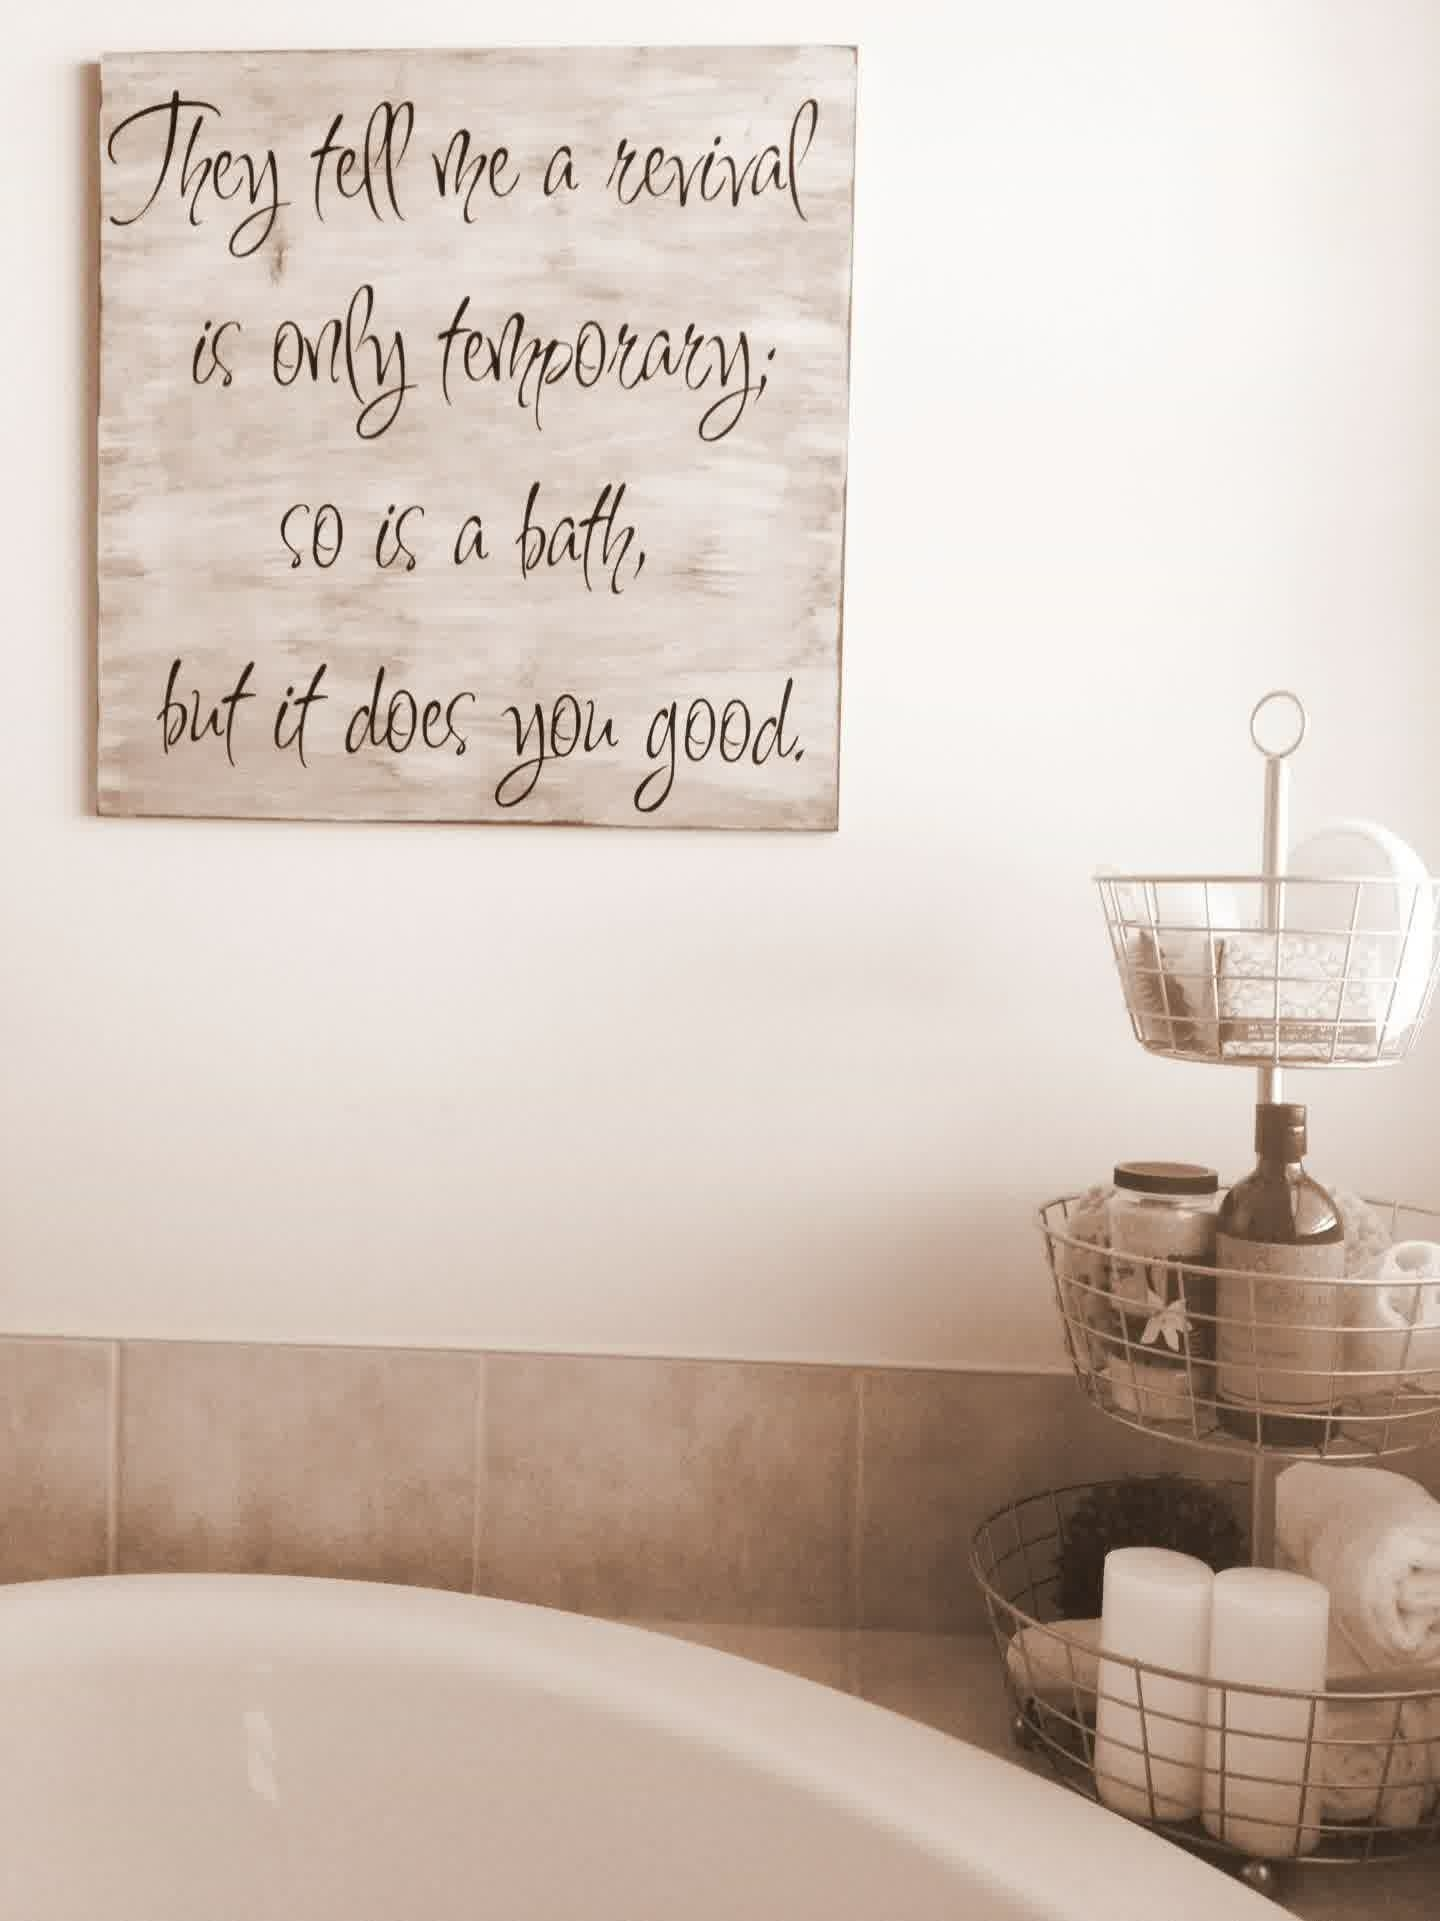 Bathroom : Impressive Bath Wall Art Or Bathroom Etsy Wash Your For Most Recent Etsy Wall Accents (View 10 of 15)